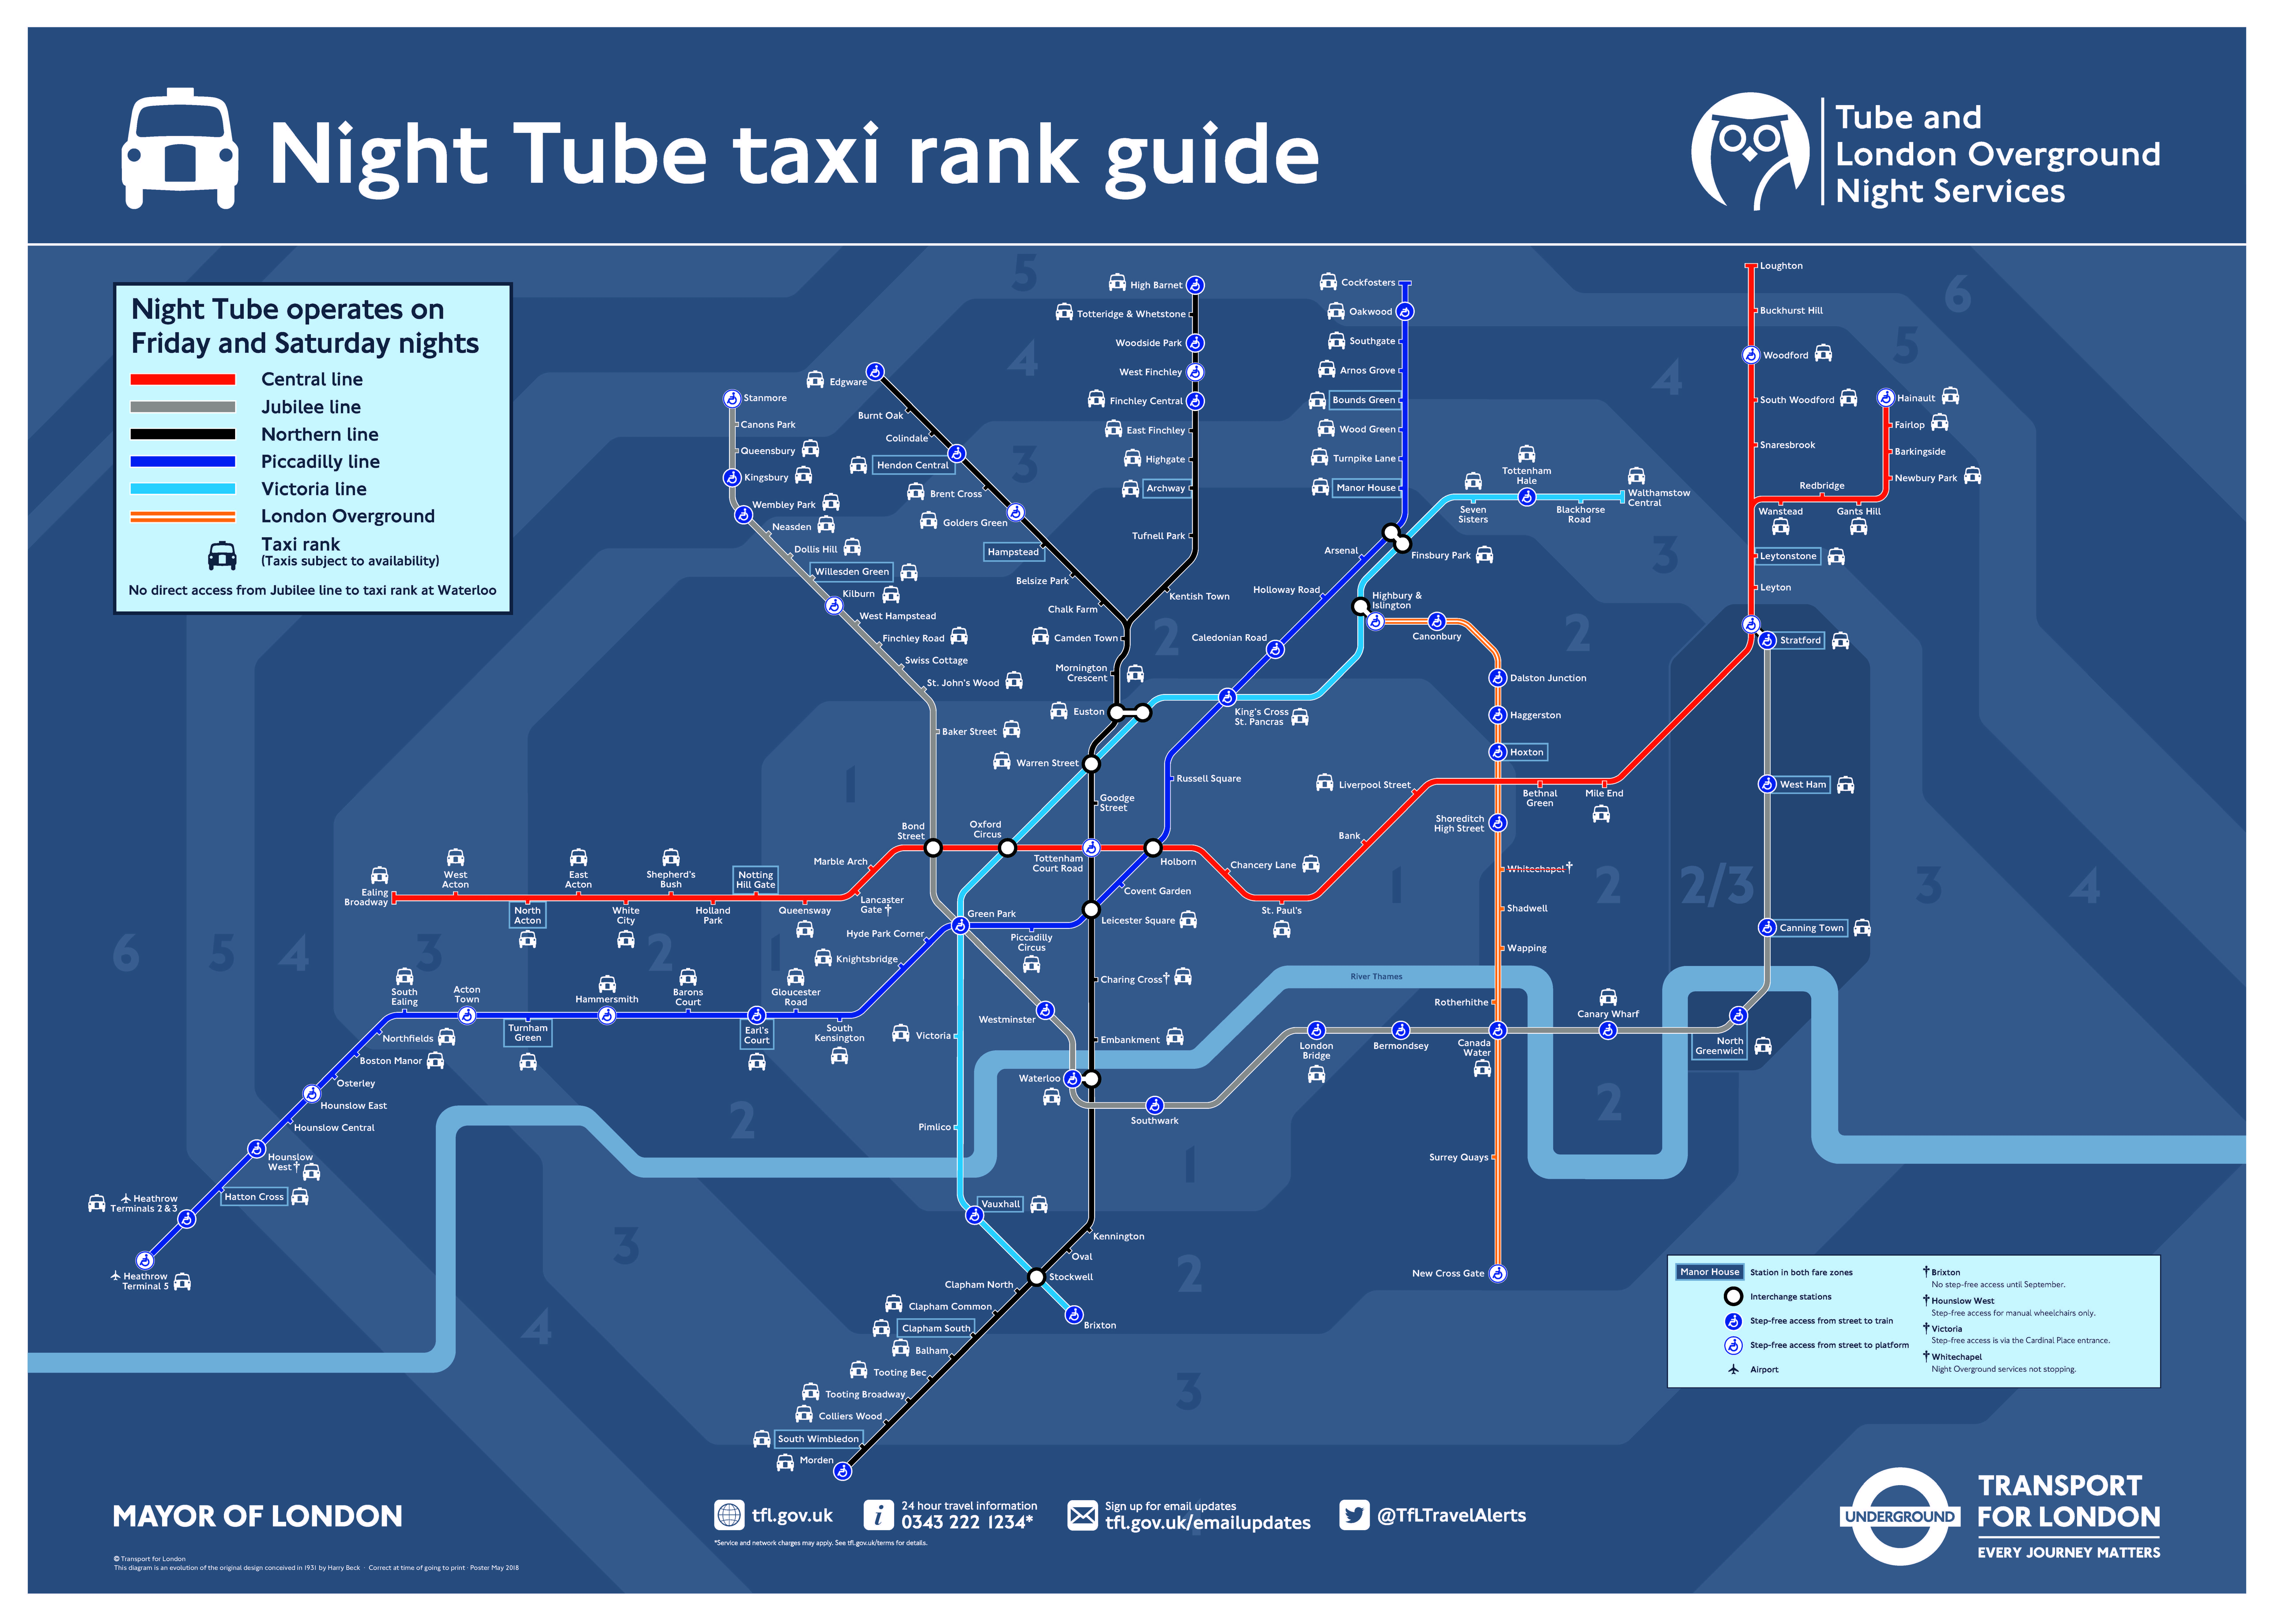 Tfls New Night Tube Map Shows Every Station With A Taxi